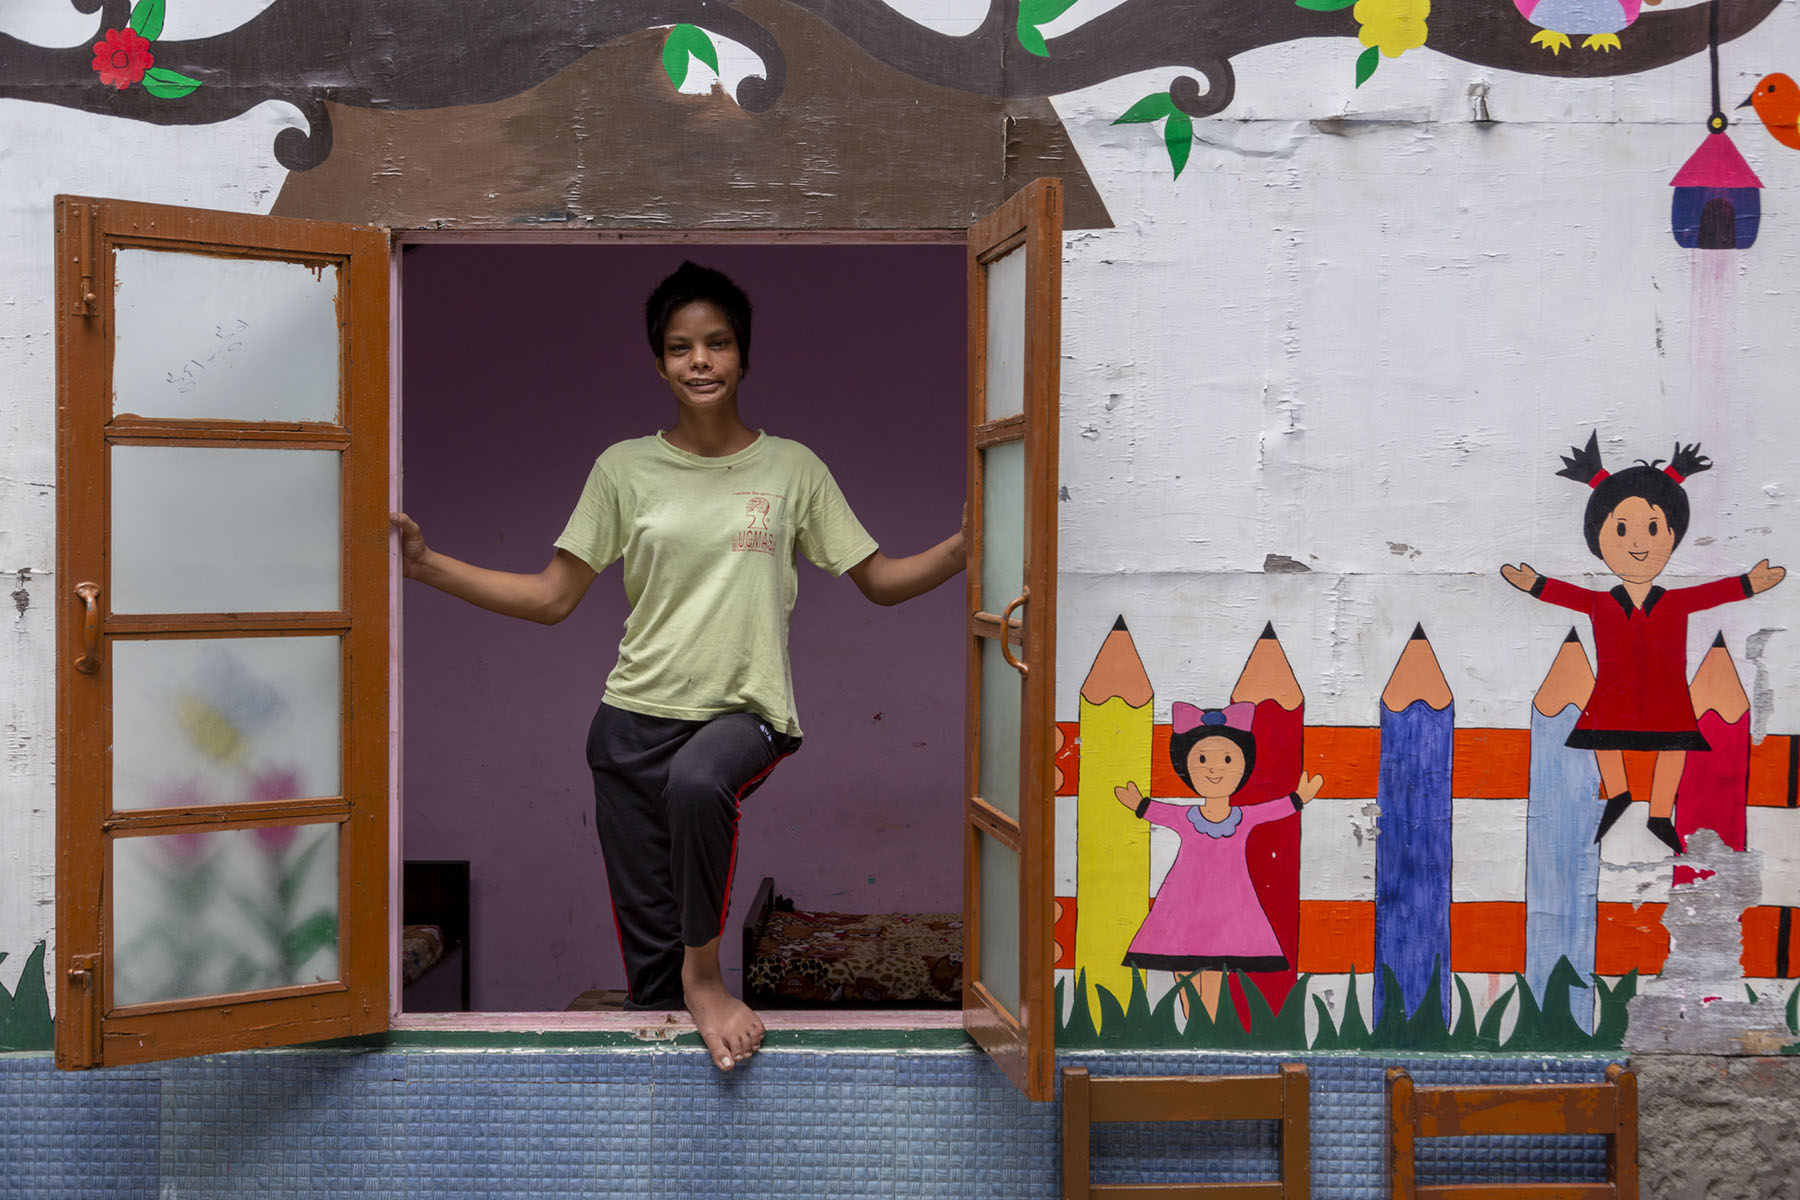 A frontal shot of Israna (18). She has closely cropped straight black hair, and wears a pista green T-shirt and chocolate brown track pants. She is about to step out of a large, open window. Her right leg is behind the window and left leg bent at the knee is resting on top of the window sill. She has raised both hands to grasp either side of the window frame. The two window shutters with glass panes are kept wide open. Colourful murals have been painted on the wall. There are childish drawings of two girls, one wearing a red frock and the other a pink frock. There is a drawing of a row of upright colour pencils in red, yellow, purple, grey and orange. The pencils have three orange horizontal bands running across them, so that the whole image looks like a fence.